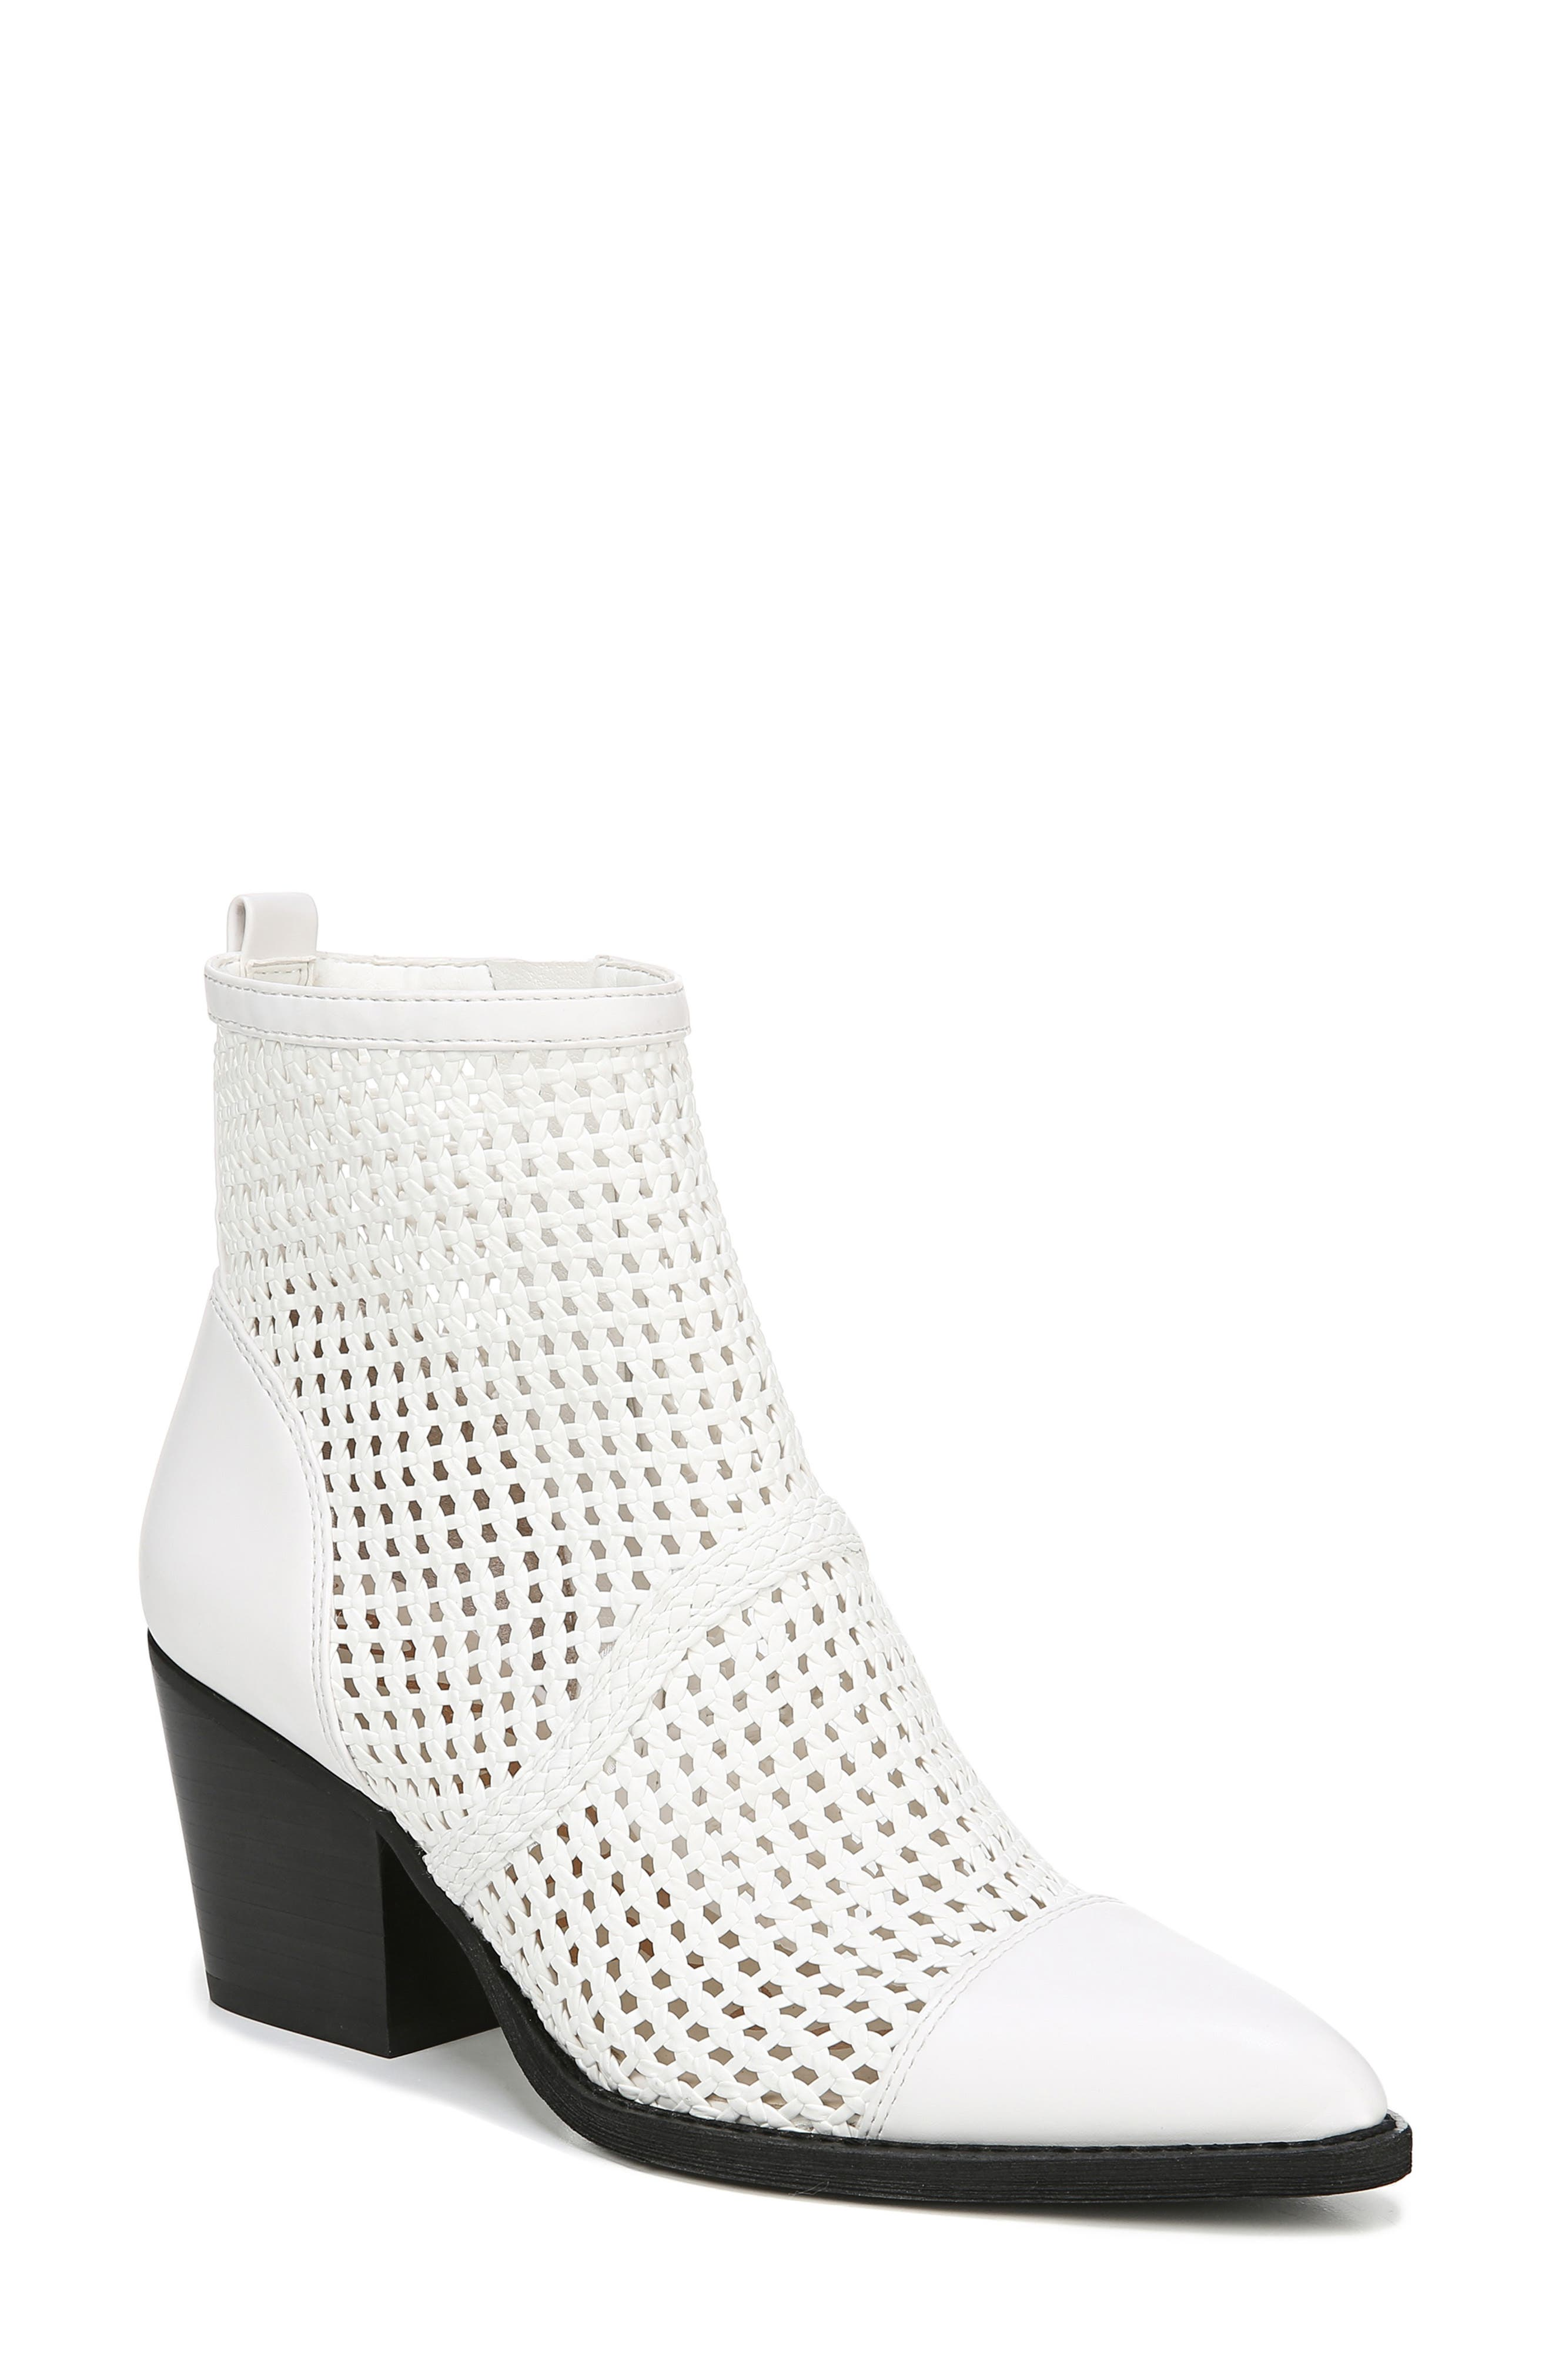 Sam Edelman Elita Woven Cap Toe Bootie, White